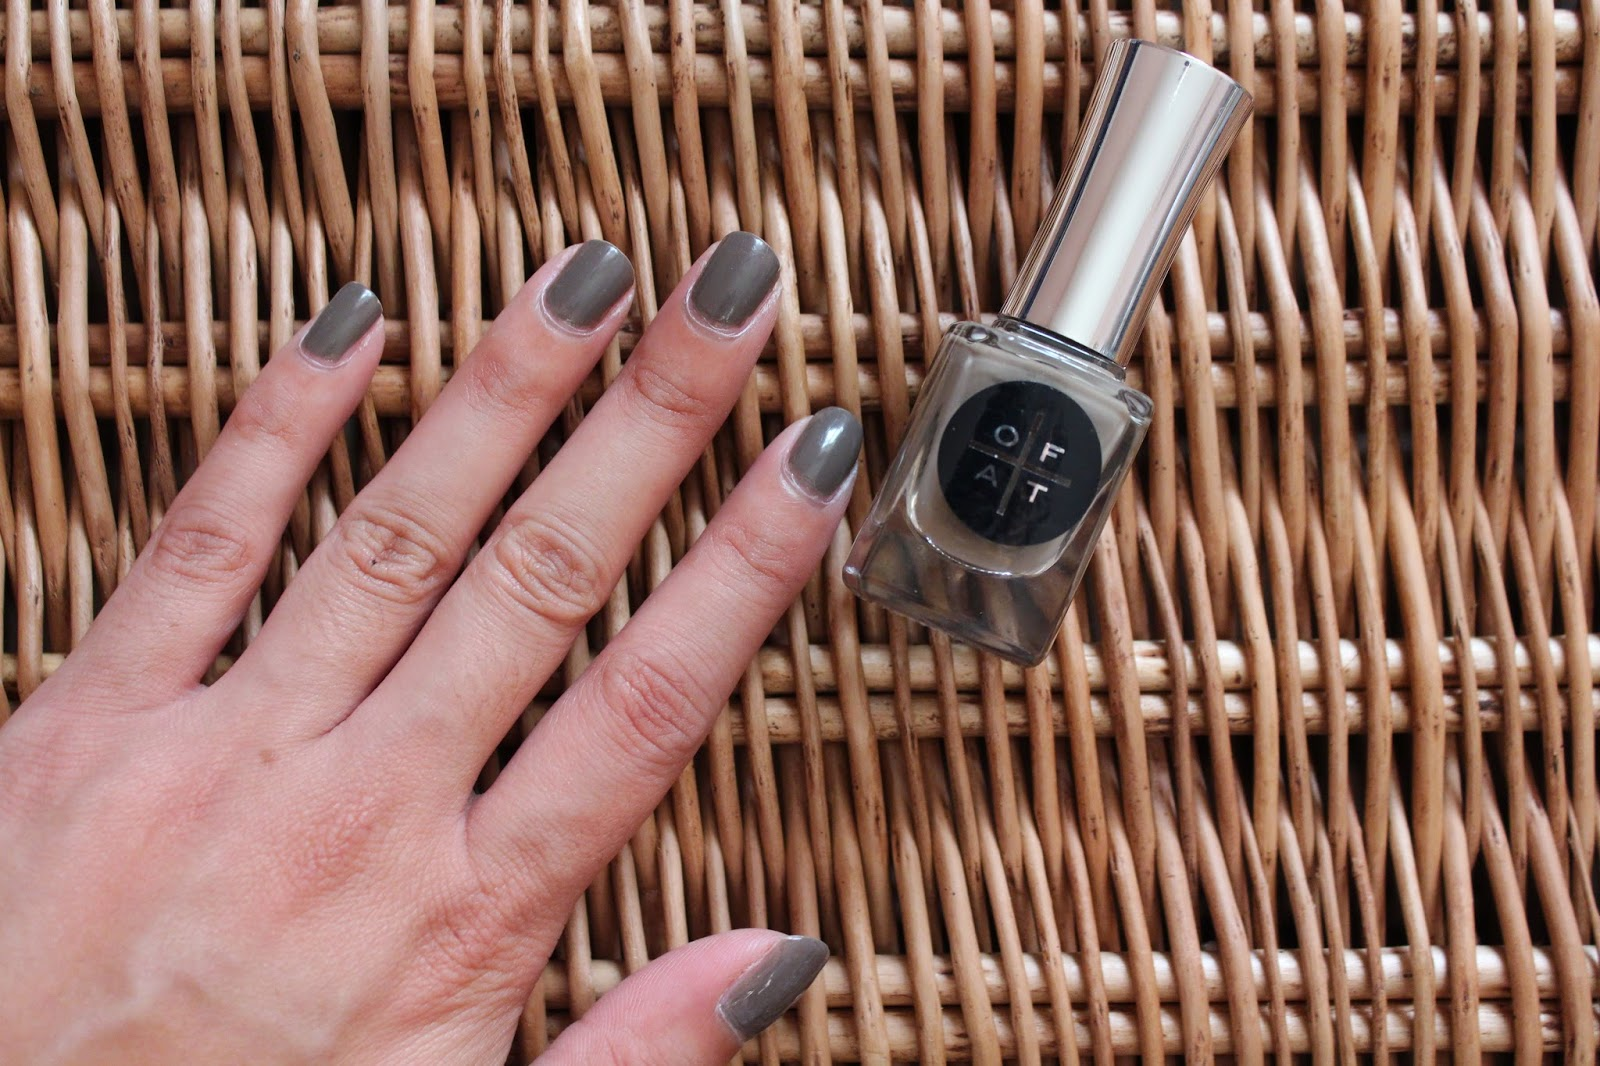 only fingers and toes nails polish